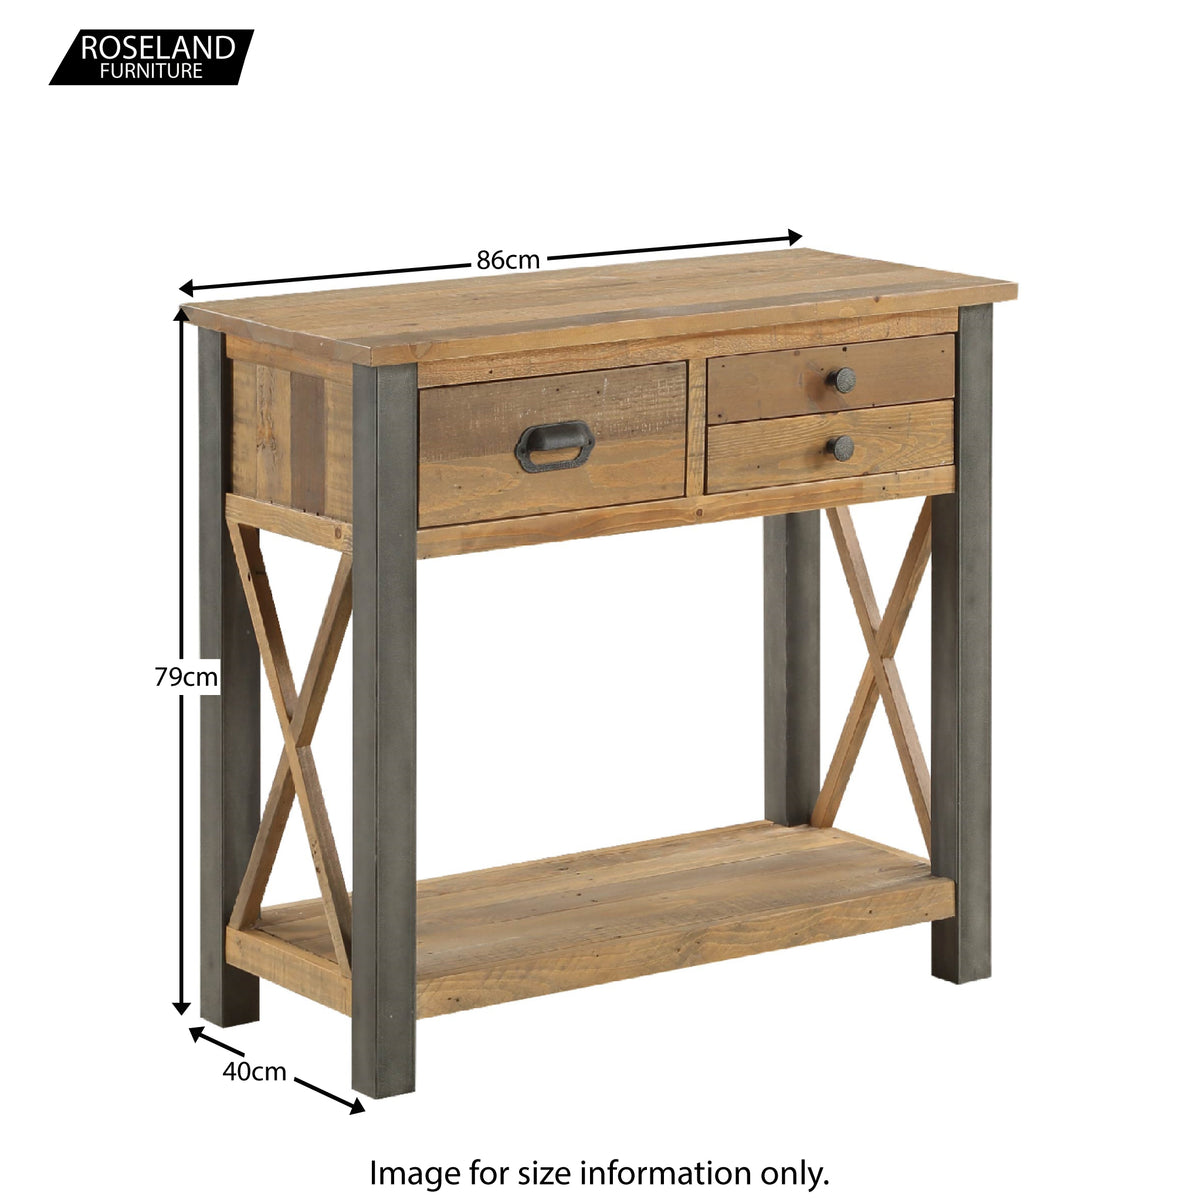 Dimensions of Urban Elegance Reclaimed Wood Small Console Table 86 x 79 x 40 cm